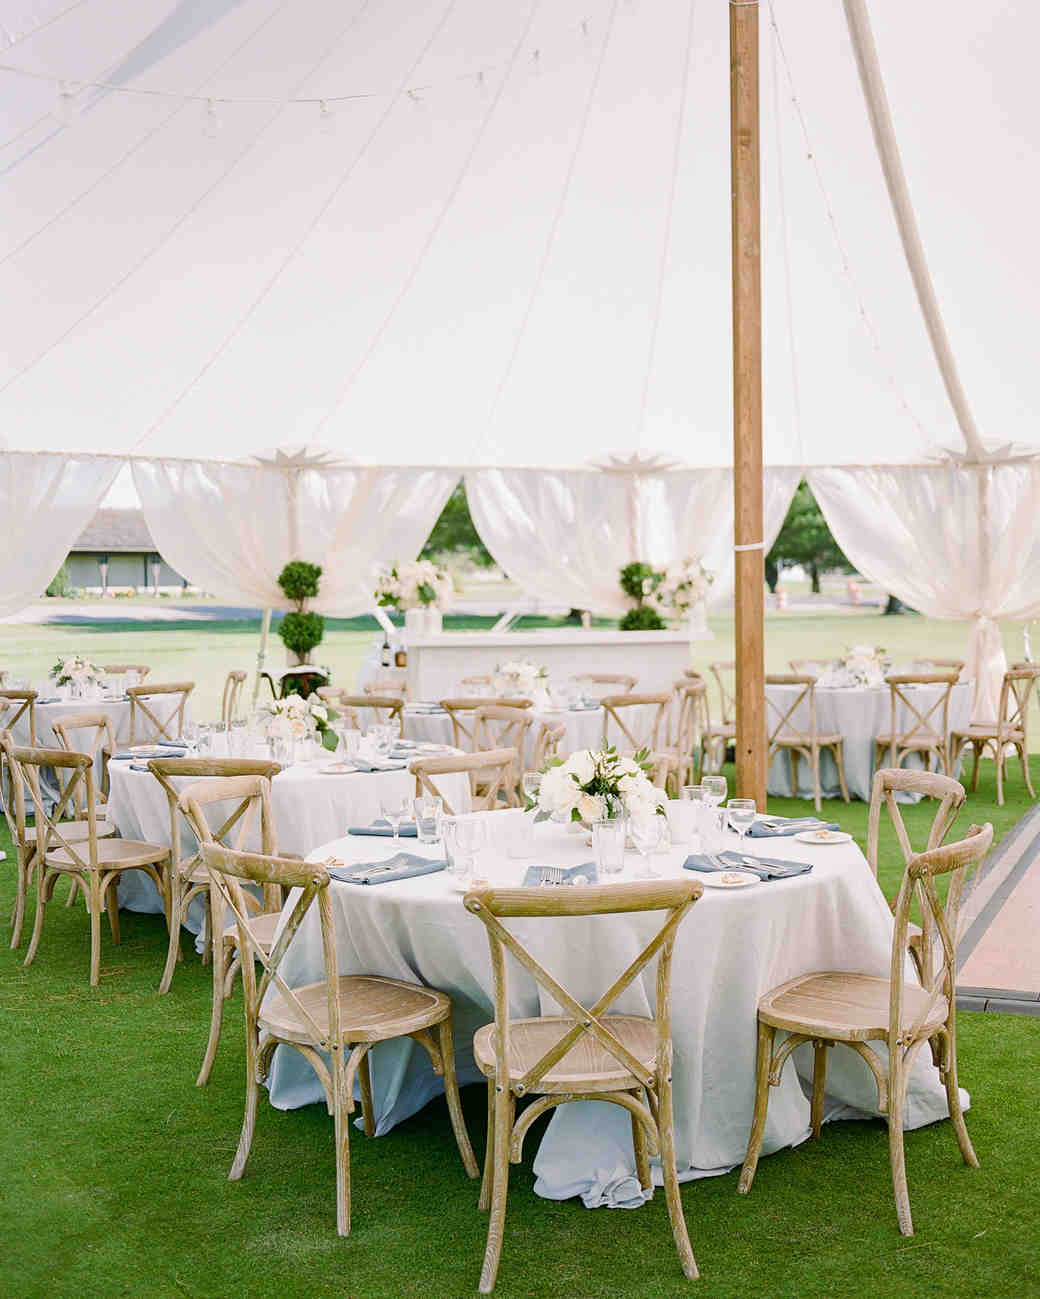 izzy tom wedding tent